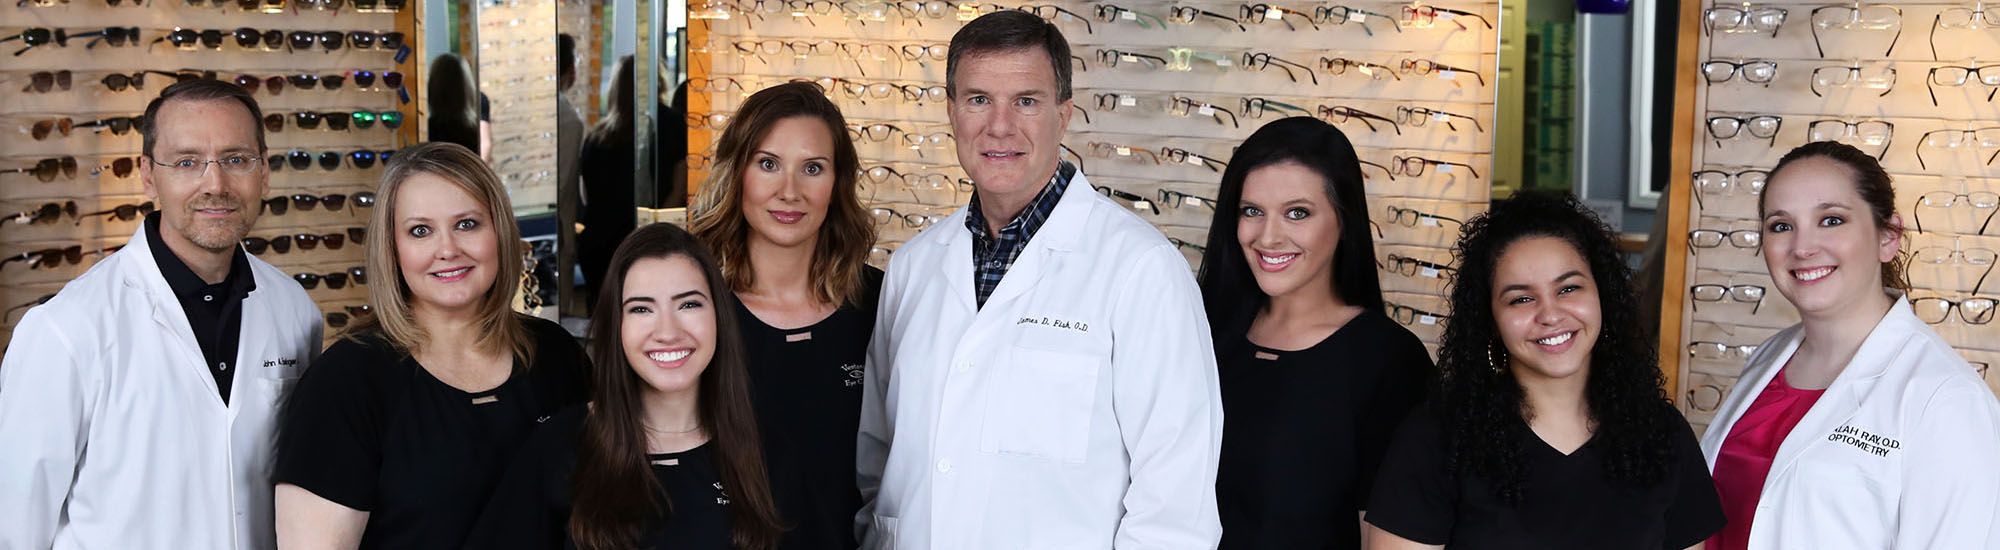 Vestavia Eye Care Doctors and Staff